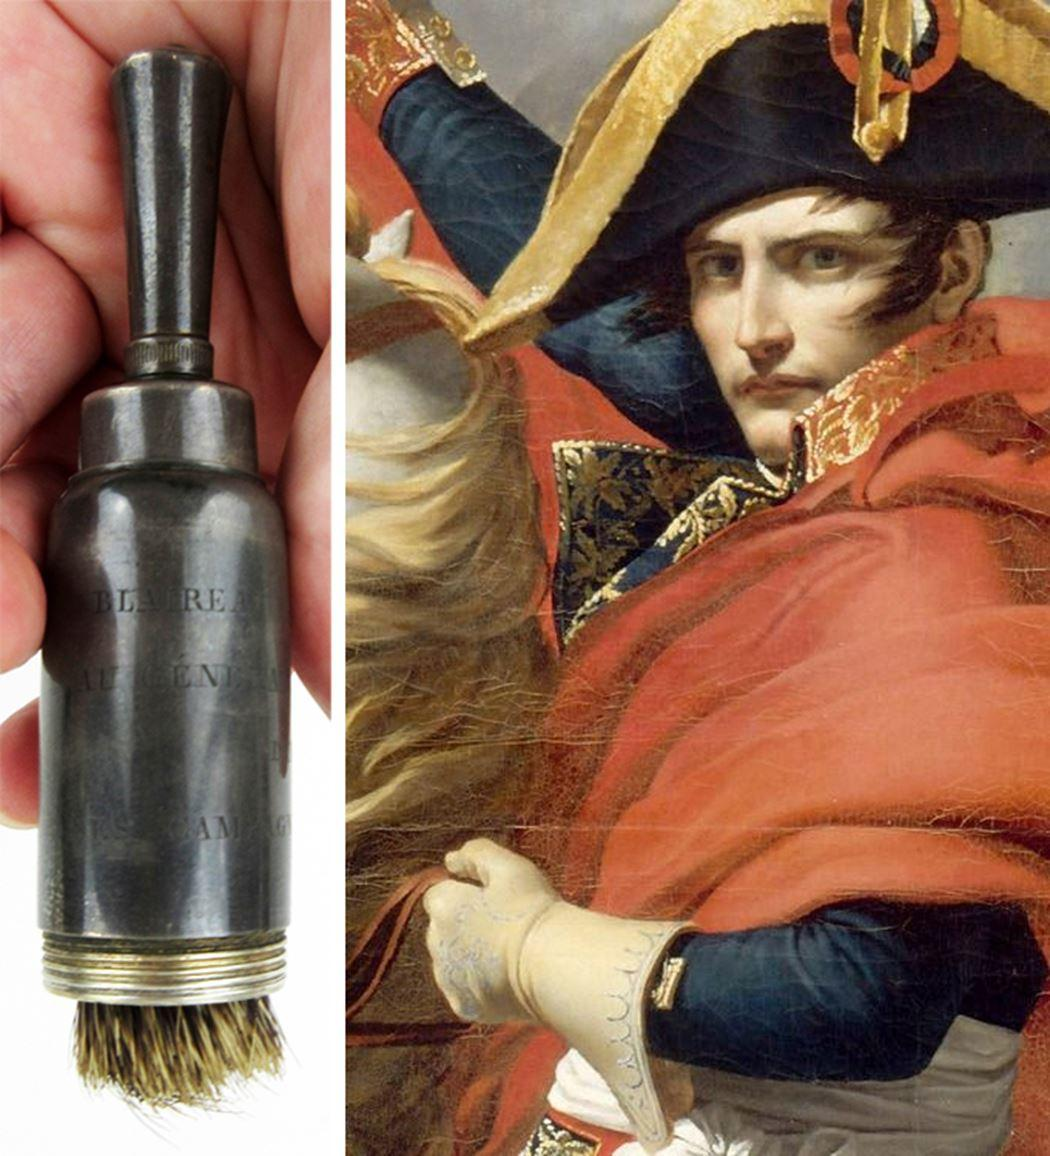 Napoleon's Personally Owned Shaving Brush, Used During the Italian Campaign, 1796-1797, Ex-Nicholson Collection